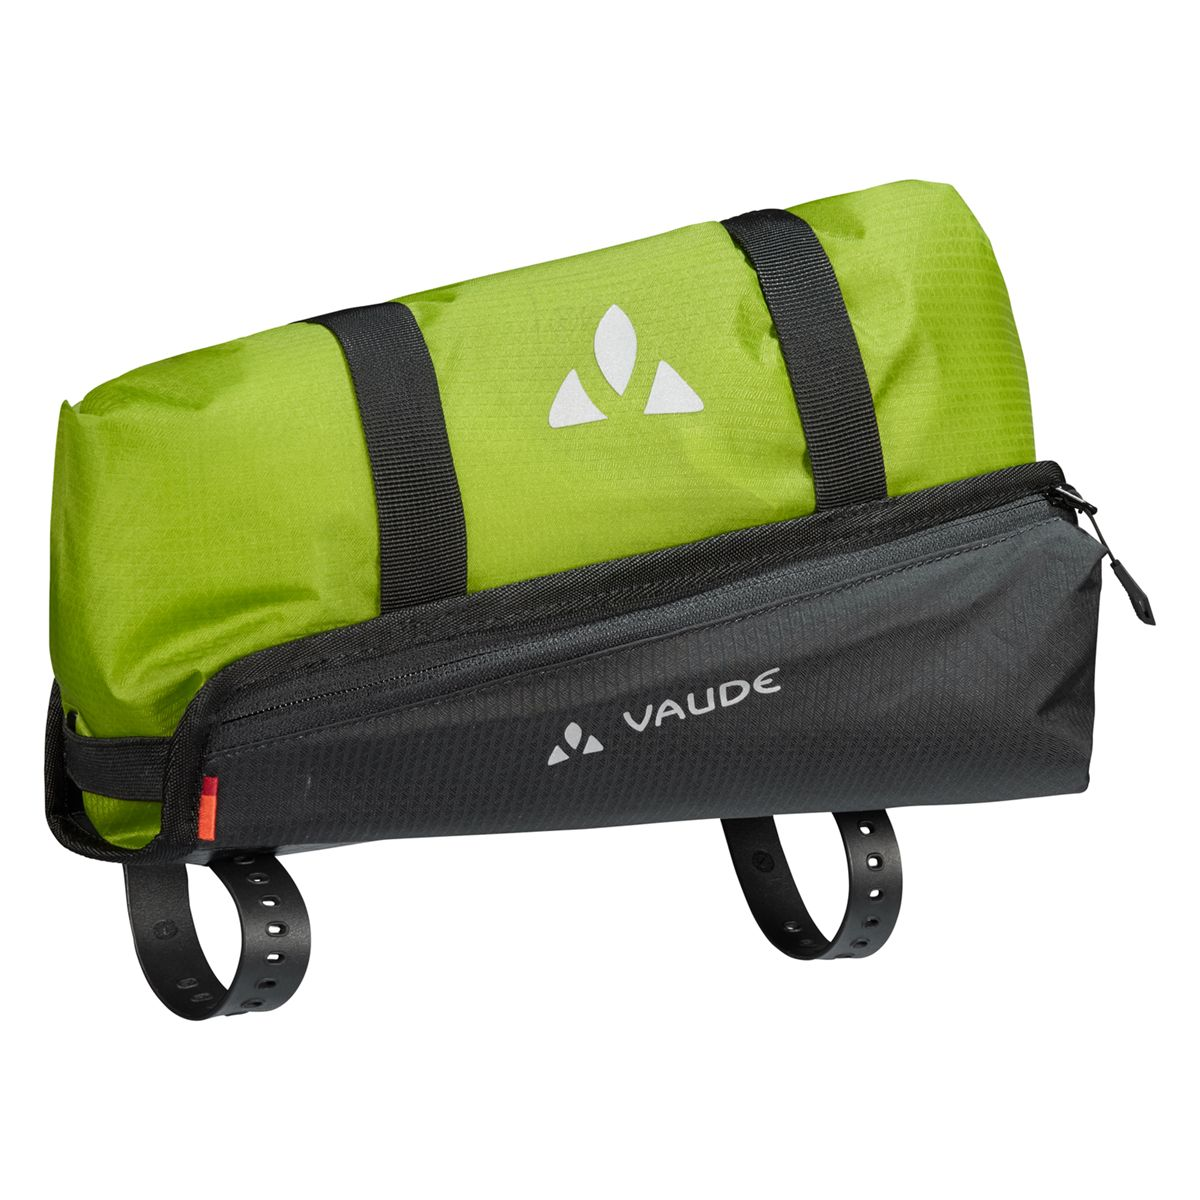 Trailguide Top Tube Bag